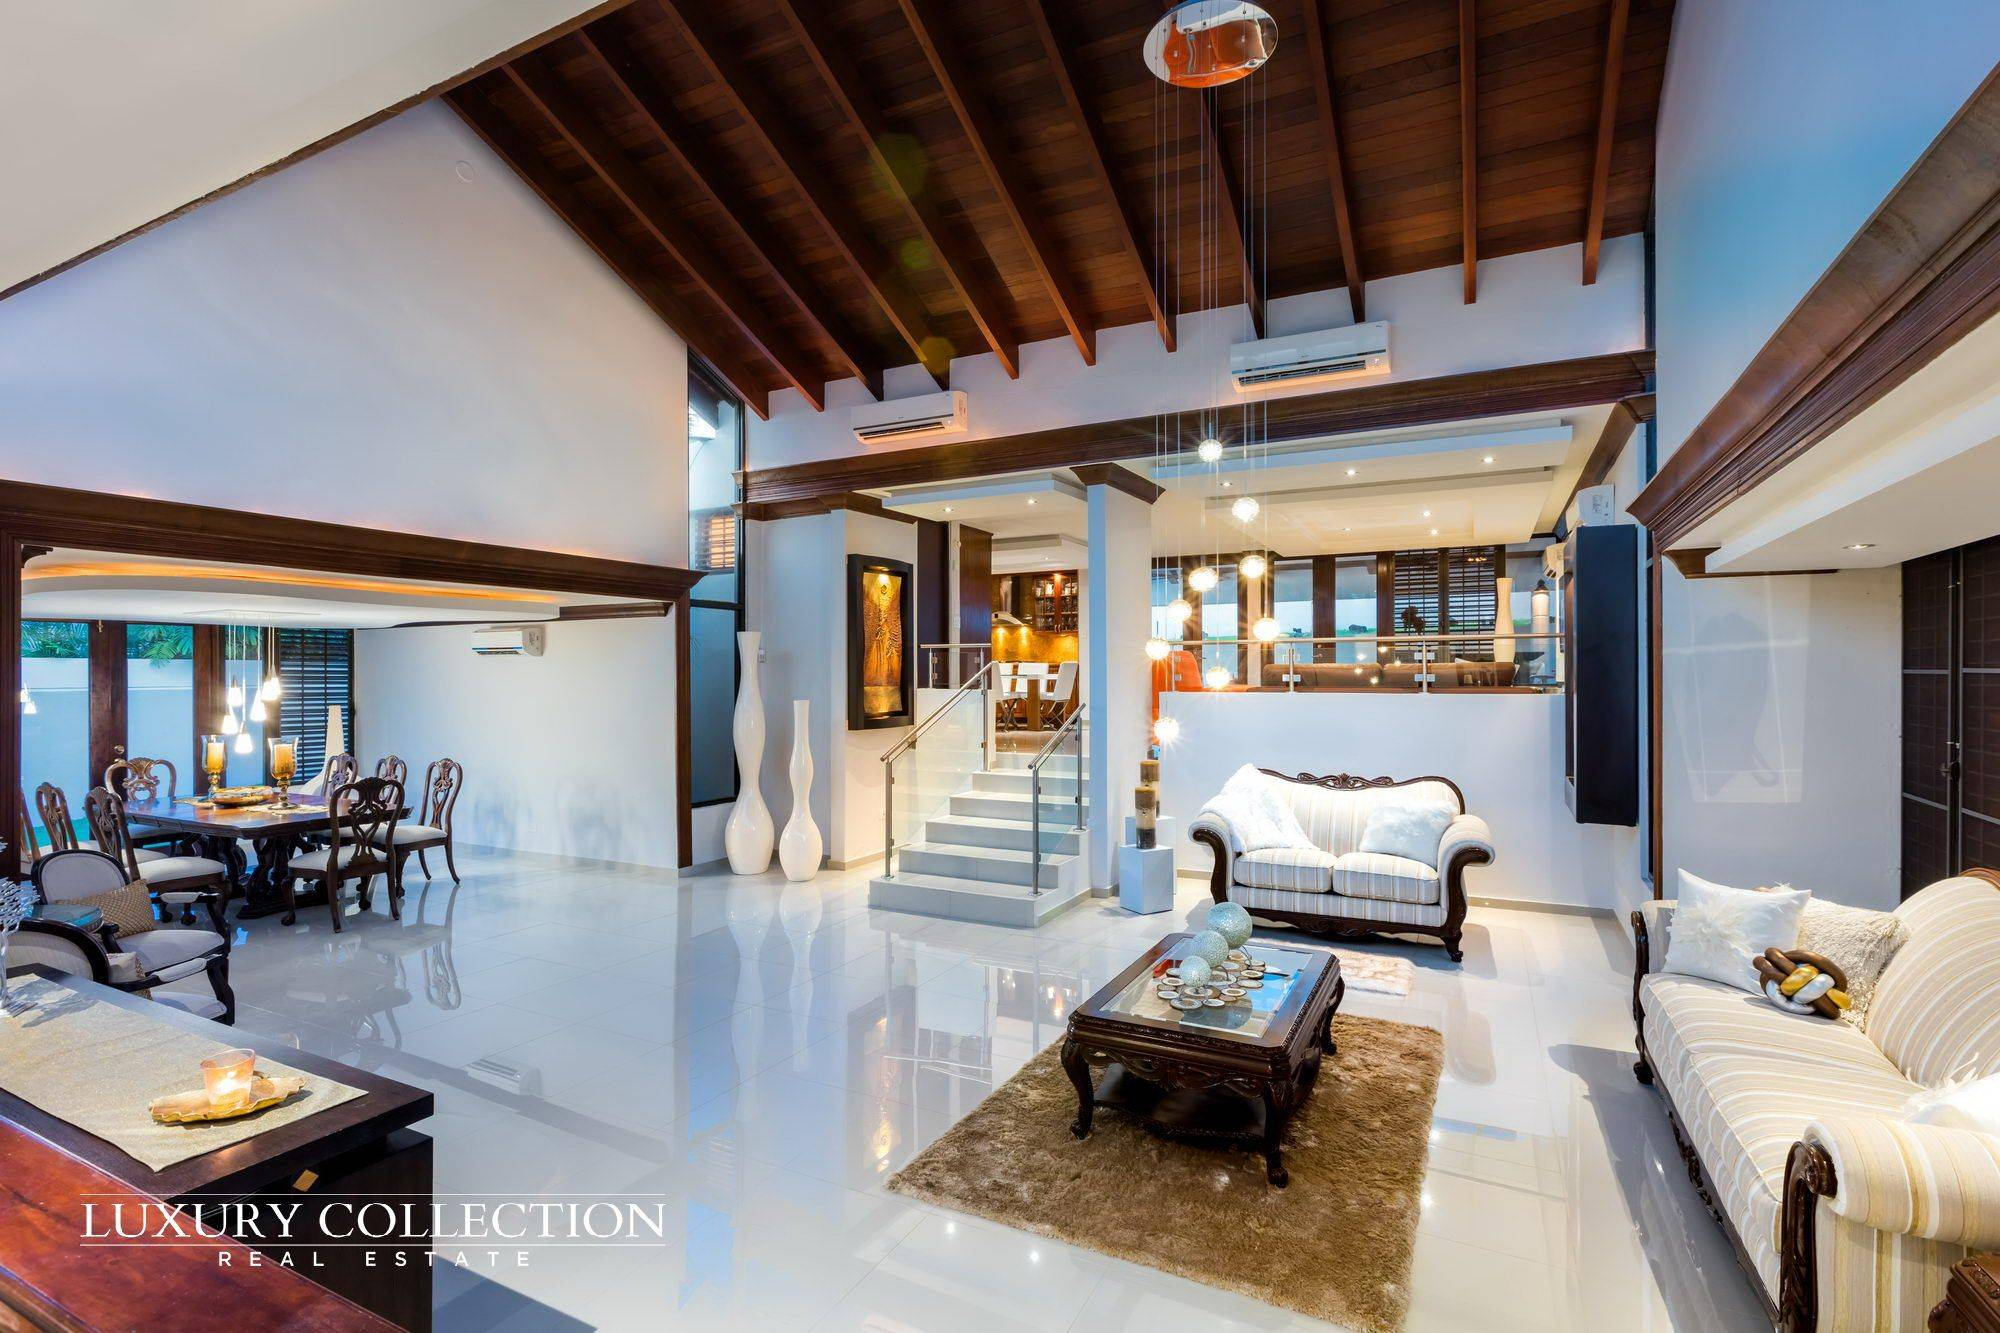 05 Luxury Collection La Colina Luxury Collection Real Estate